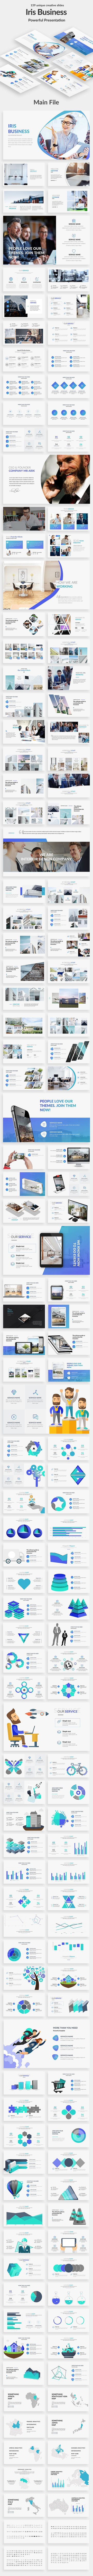 Iris Business Professional Powerpoint Template — Powerpoint PPT #International Food #clear and fresh • Available here ➝ https://graphicriver.net/item/iris-business-professional-powerpoint-template/20533740?ref=pxcr